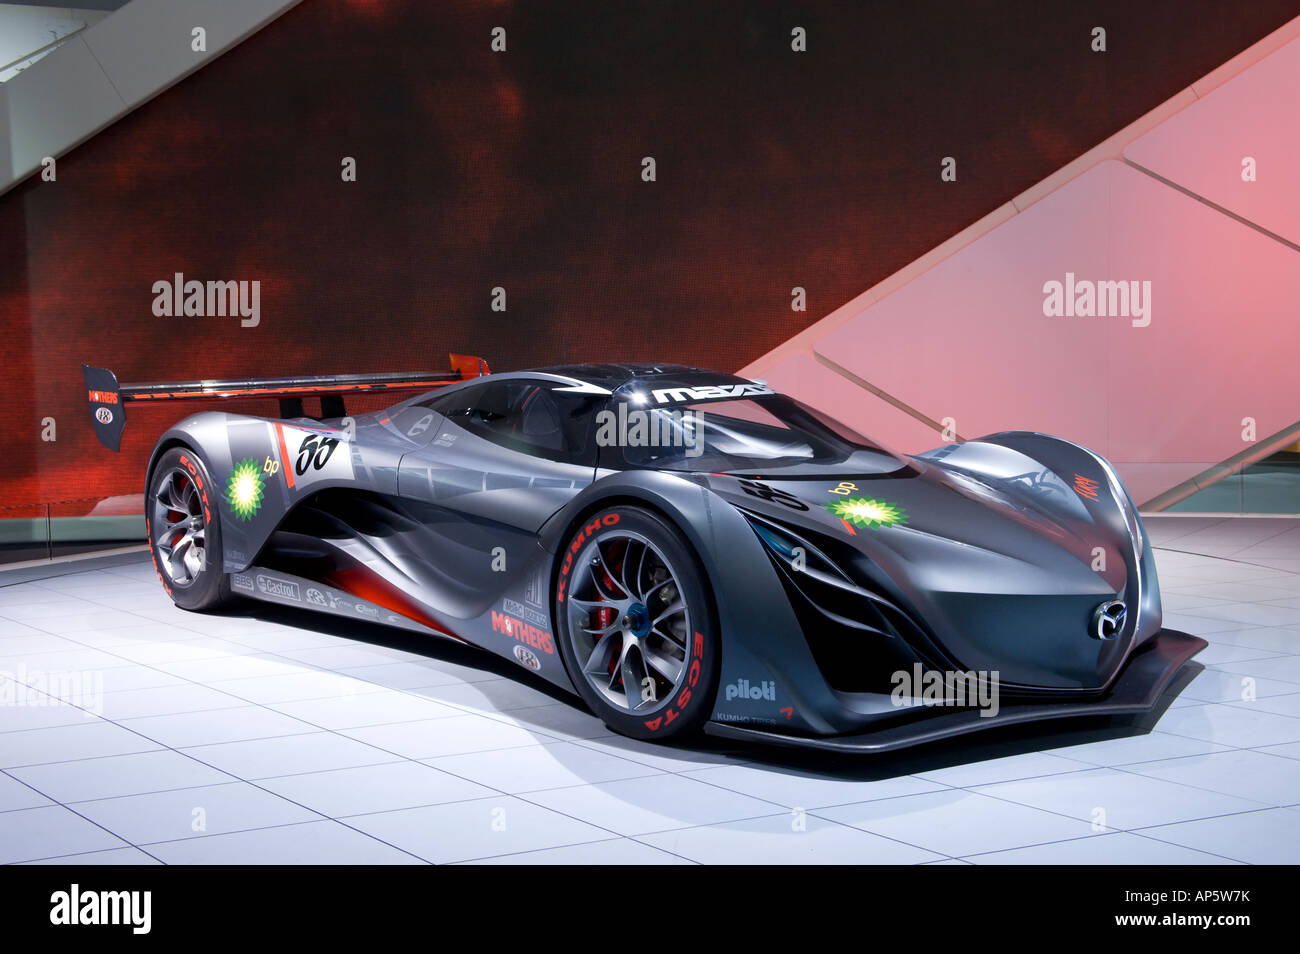 Mazda Furai Concept Car At The 2008 North American International Auto Show In Detroit Michigan USA